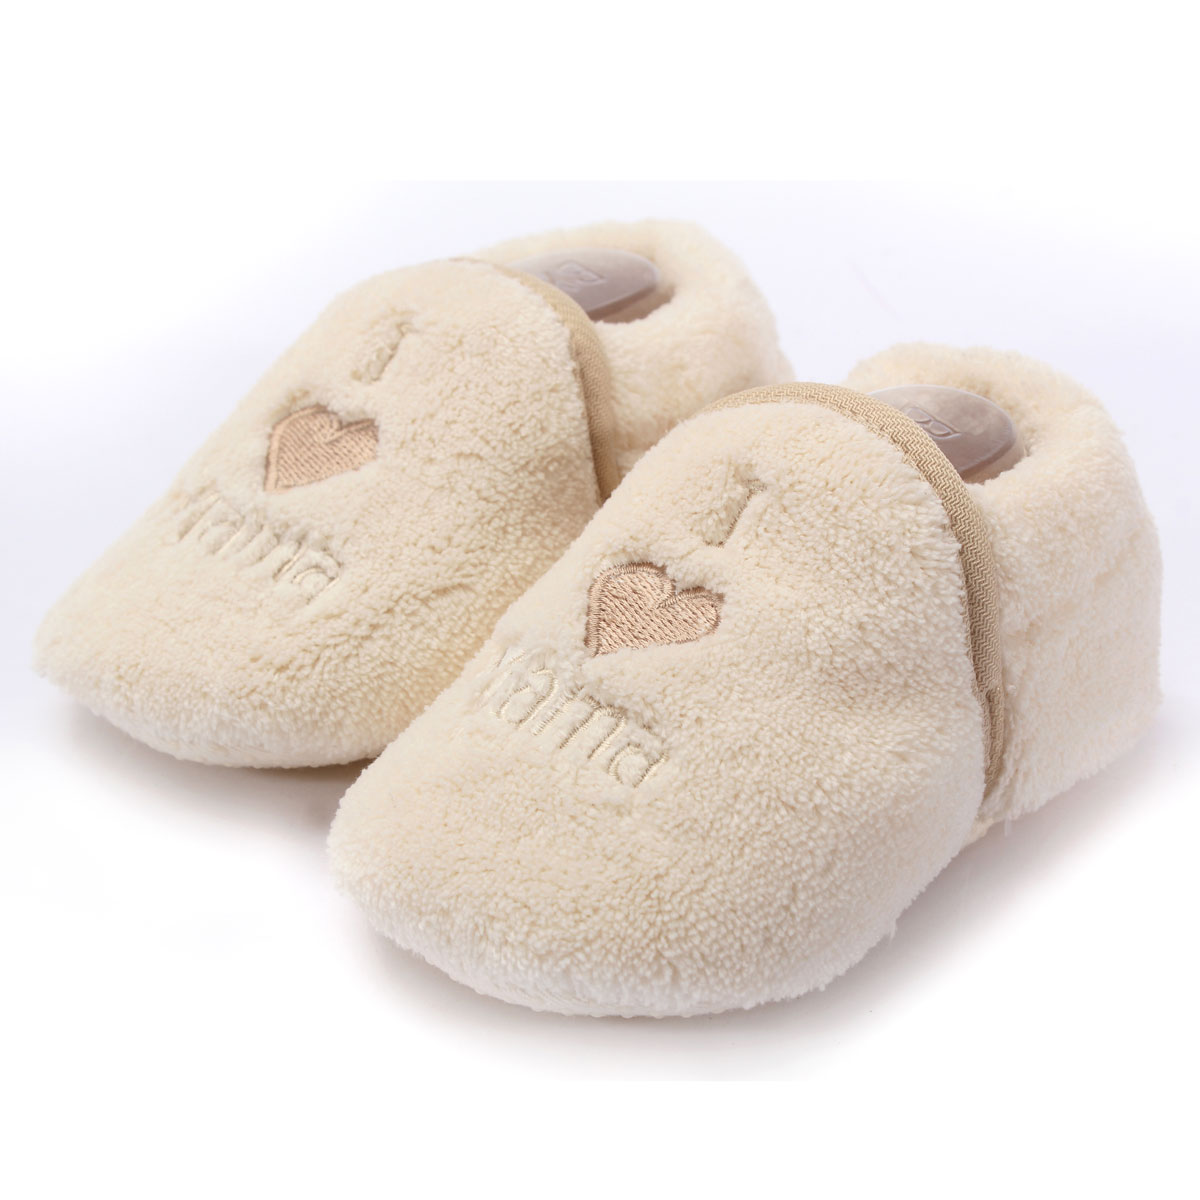 Baby First Walkers Retail Cotton Lovely Shoes Toddler Unisex Soft Sole Skid-proof 6-12 Month Kids Girl Boy Infant Shoe Prewalker(China (Mainland))